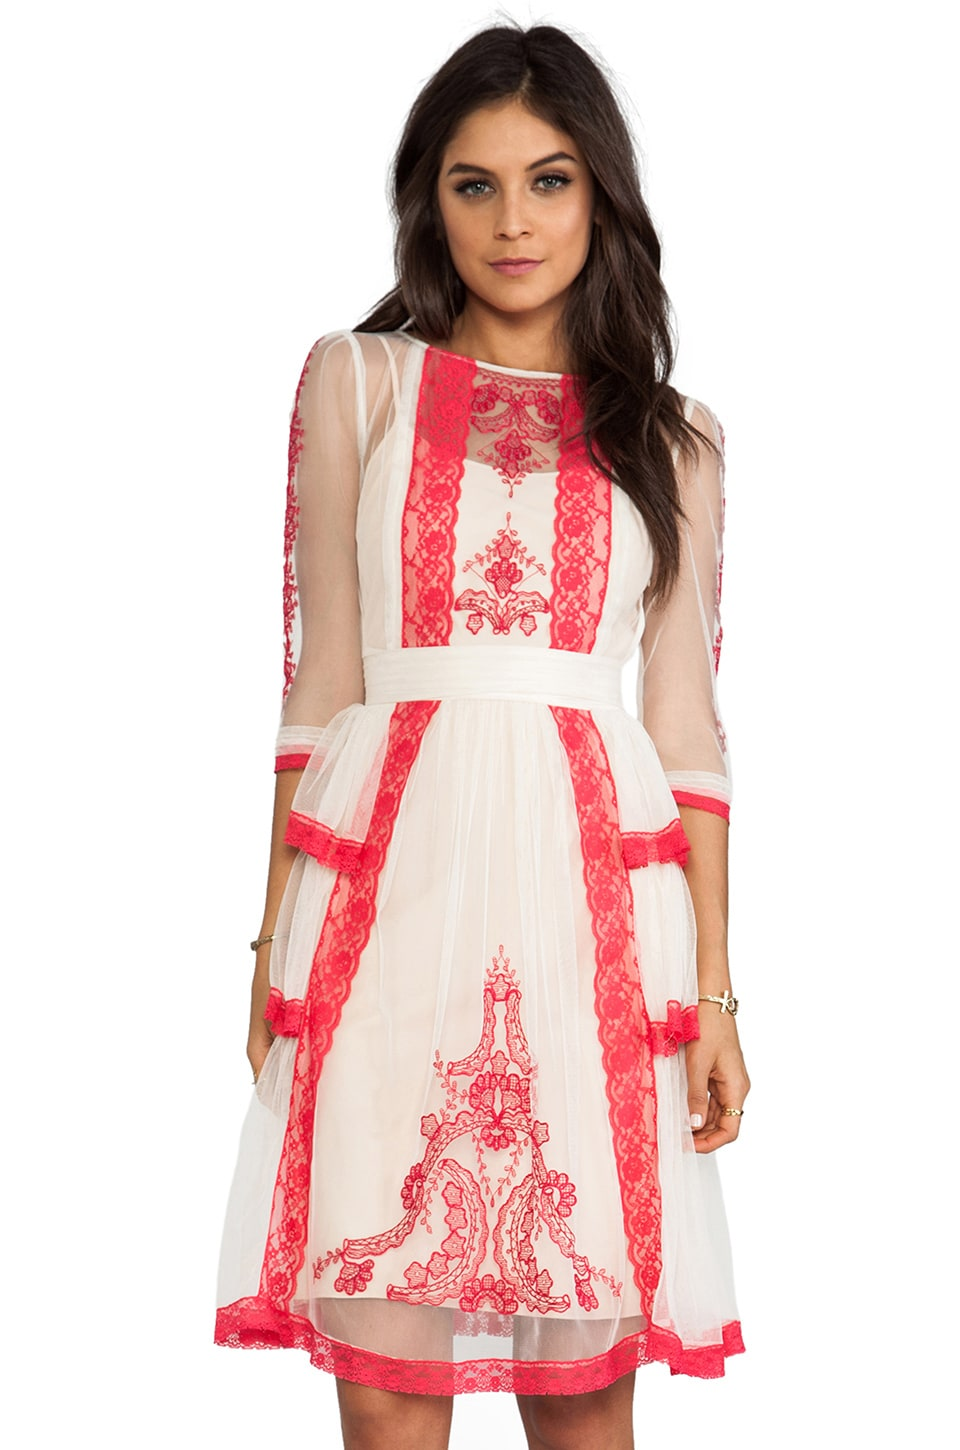 Alice by Temperley Botanical Dress in Geranium